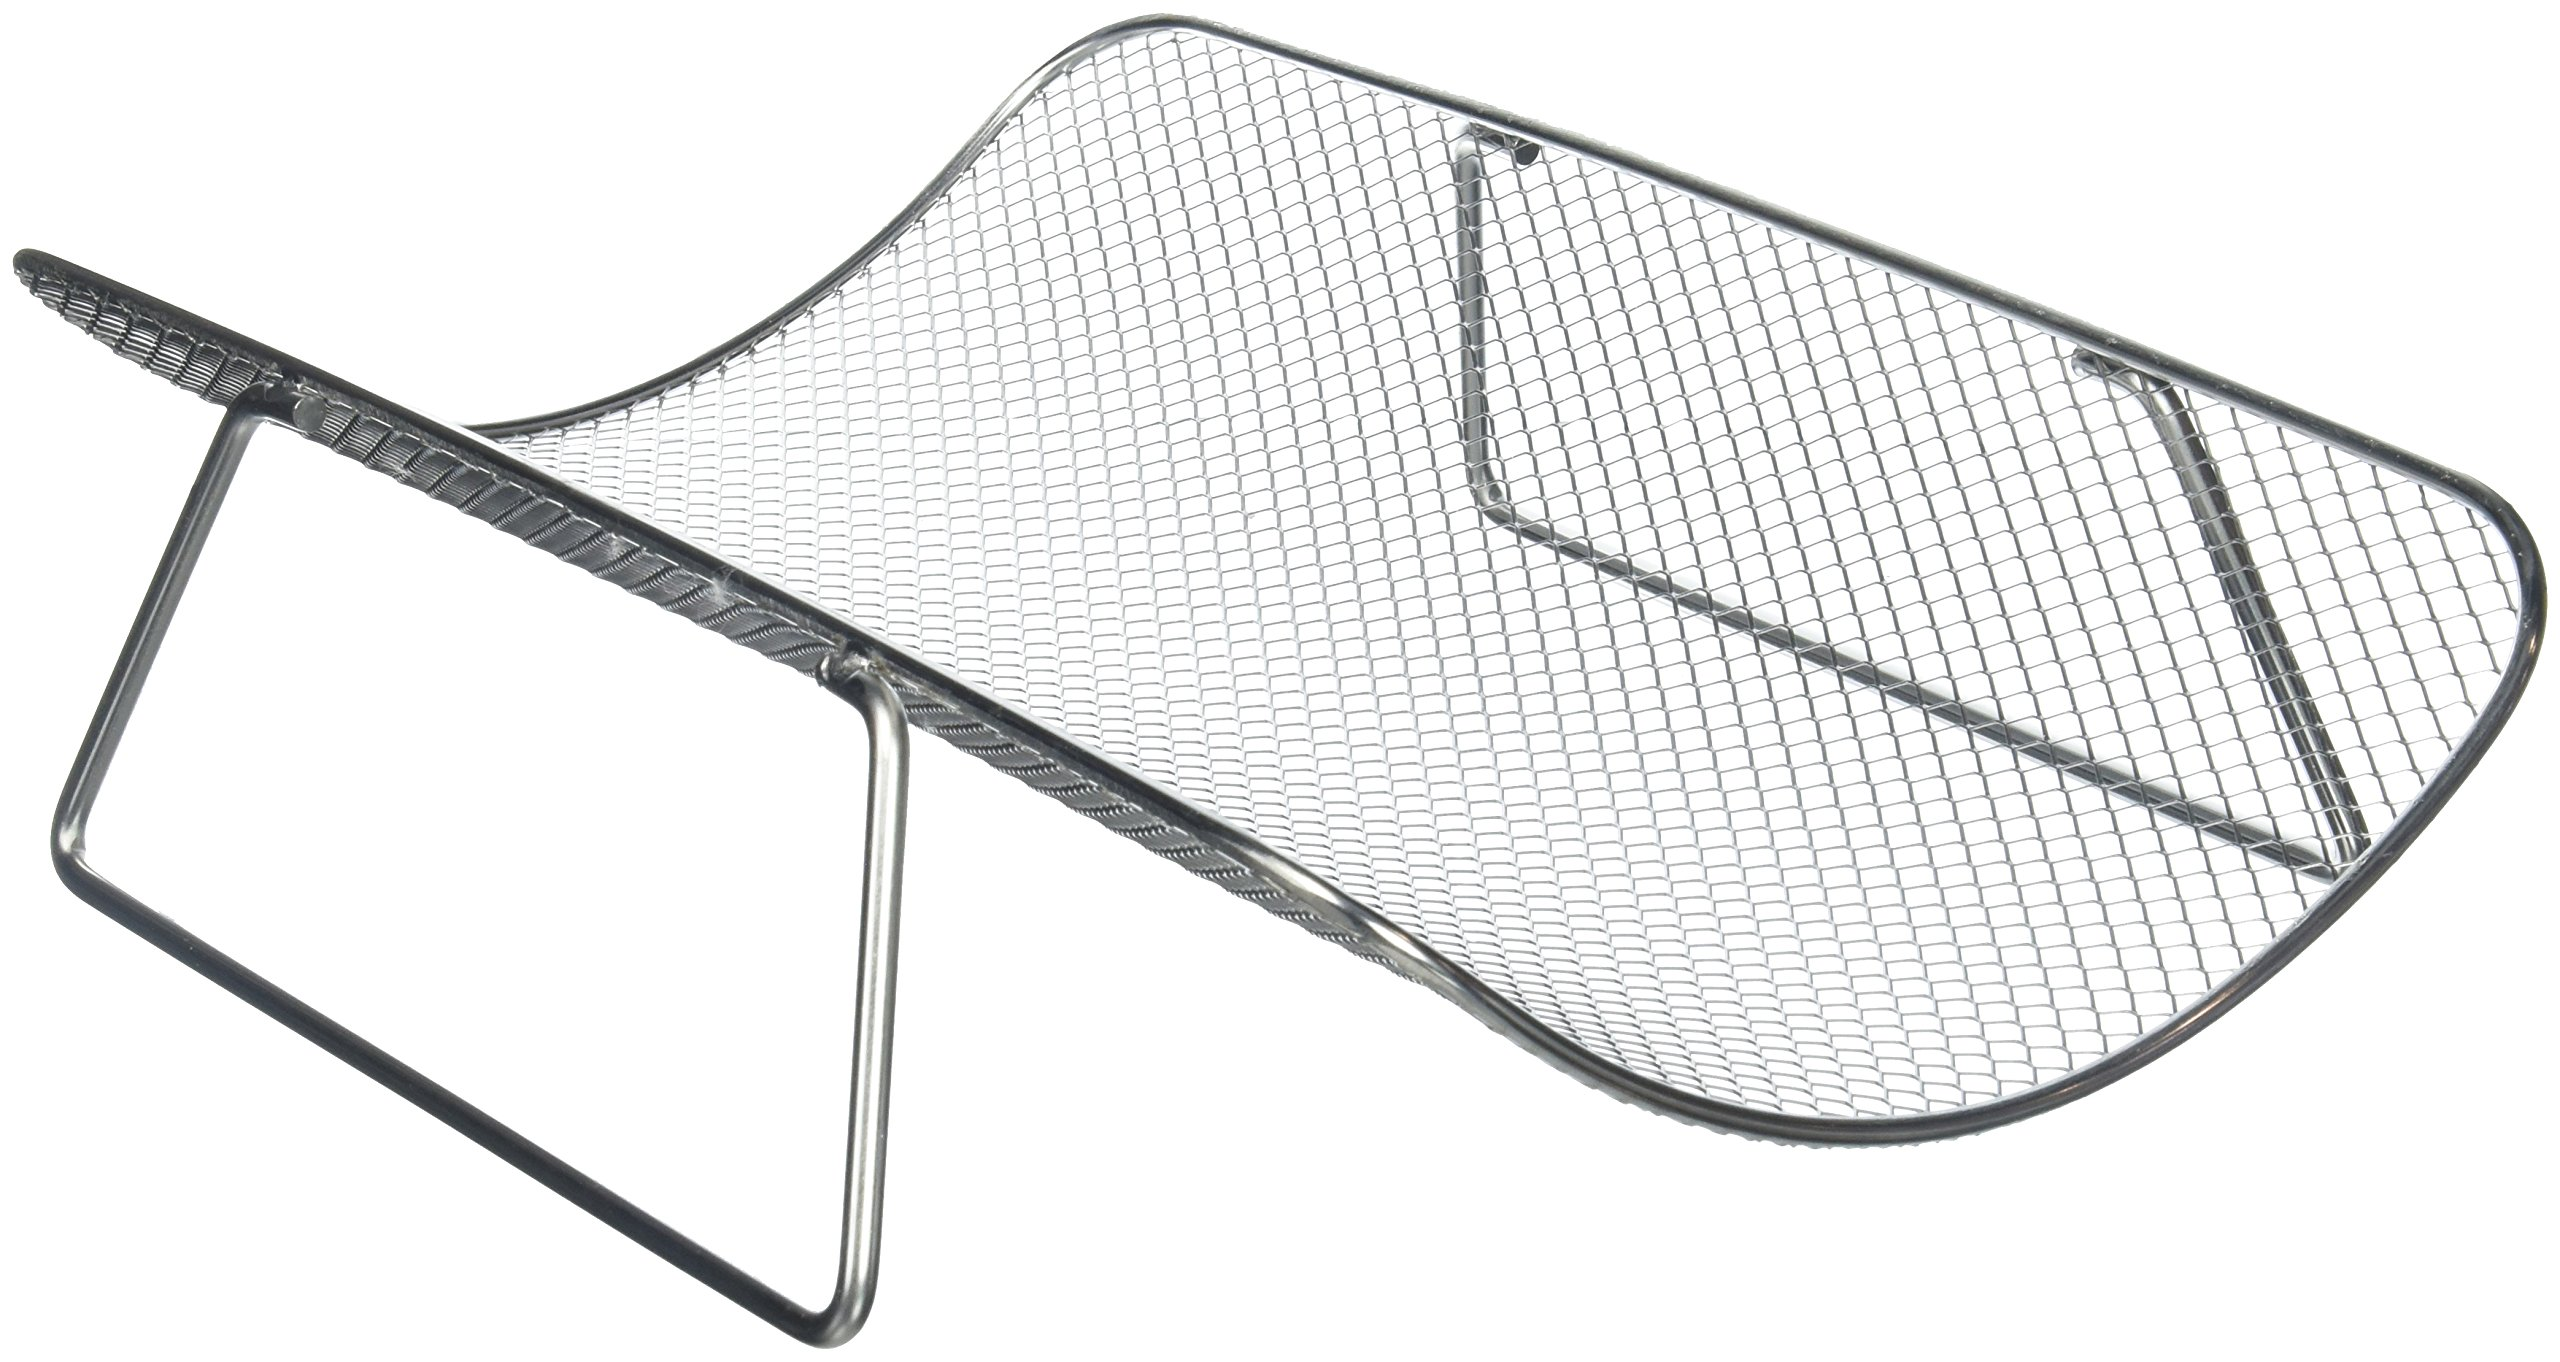 Paderno World Cuisine Stainless Steel Roasting Rack, 15-Inch x 8 1/2-Inch